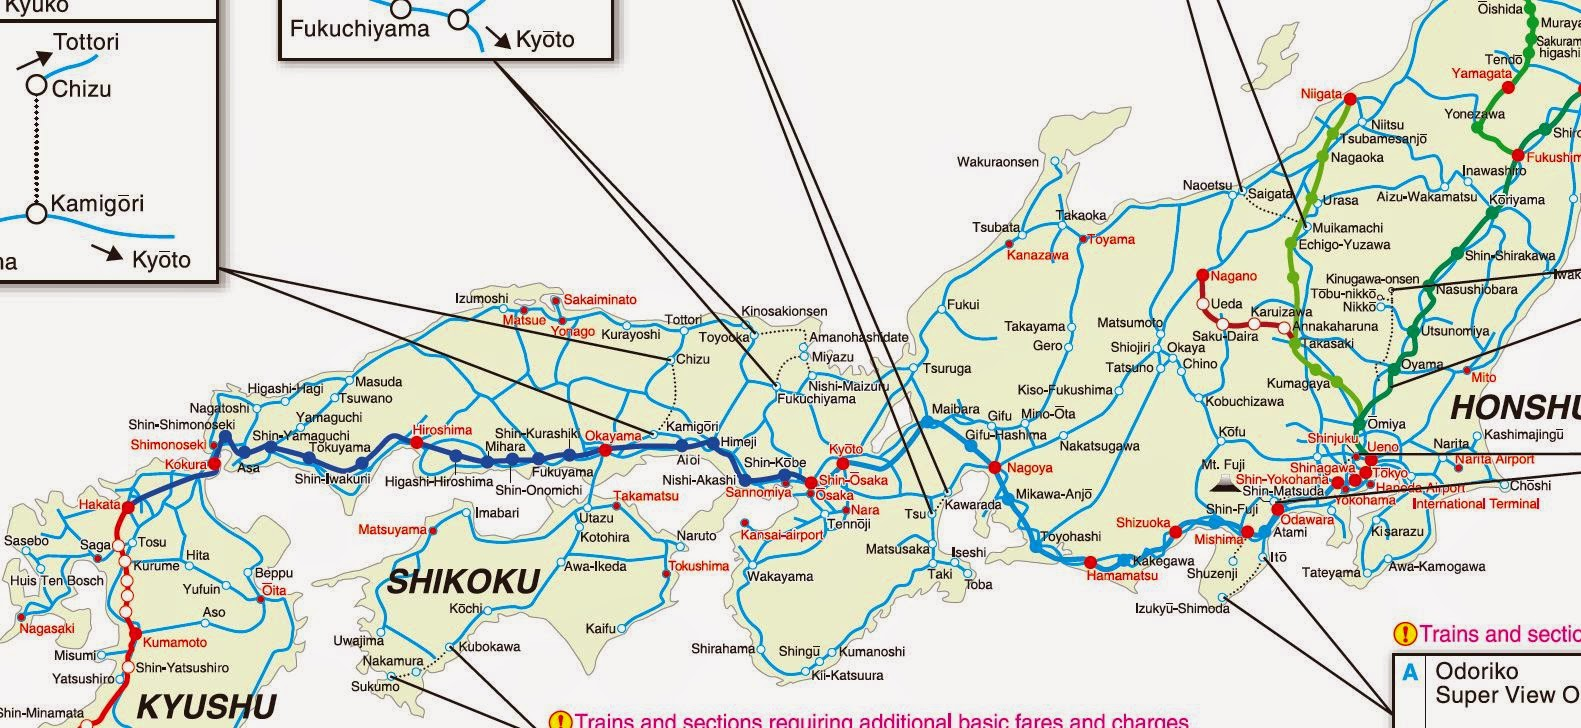 Urban Kchoze National Transport Infrastructure The Importance Of A National Train System